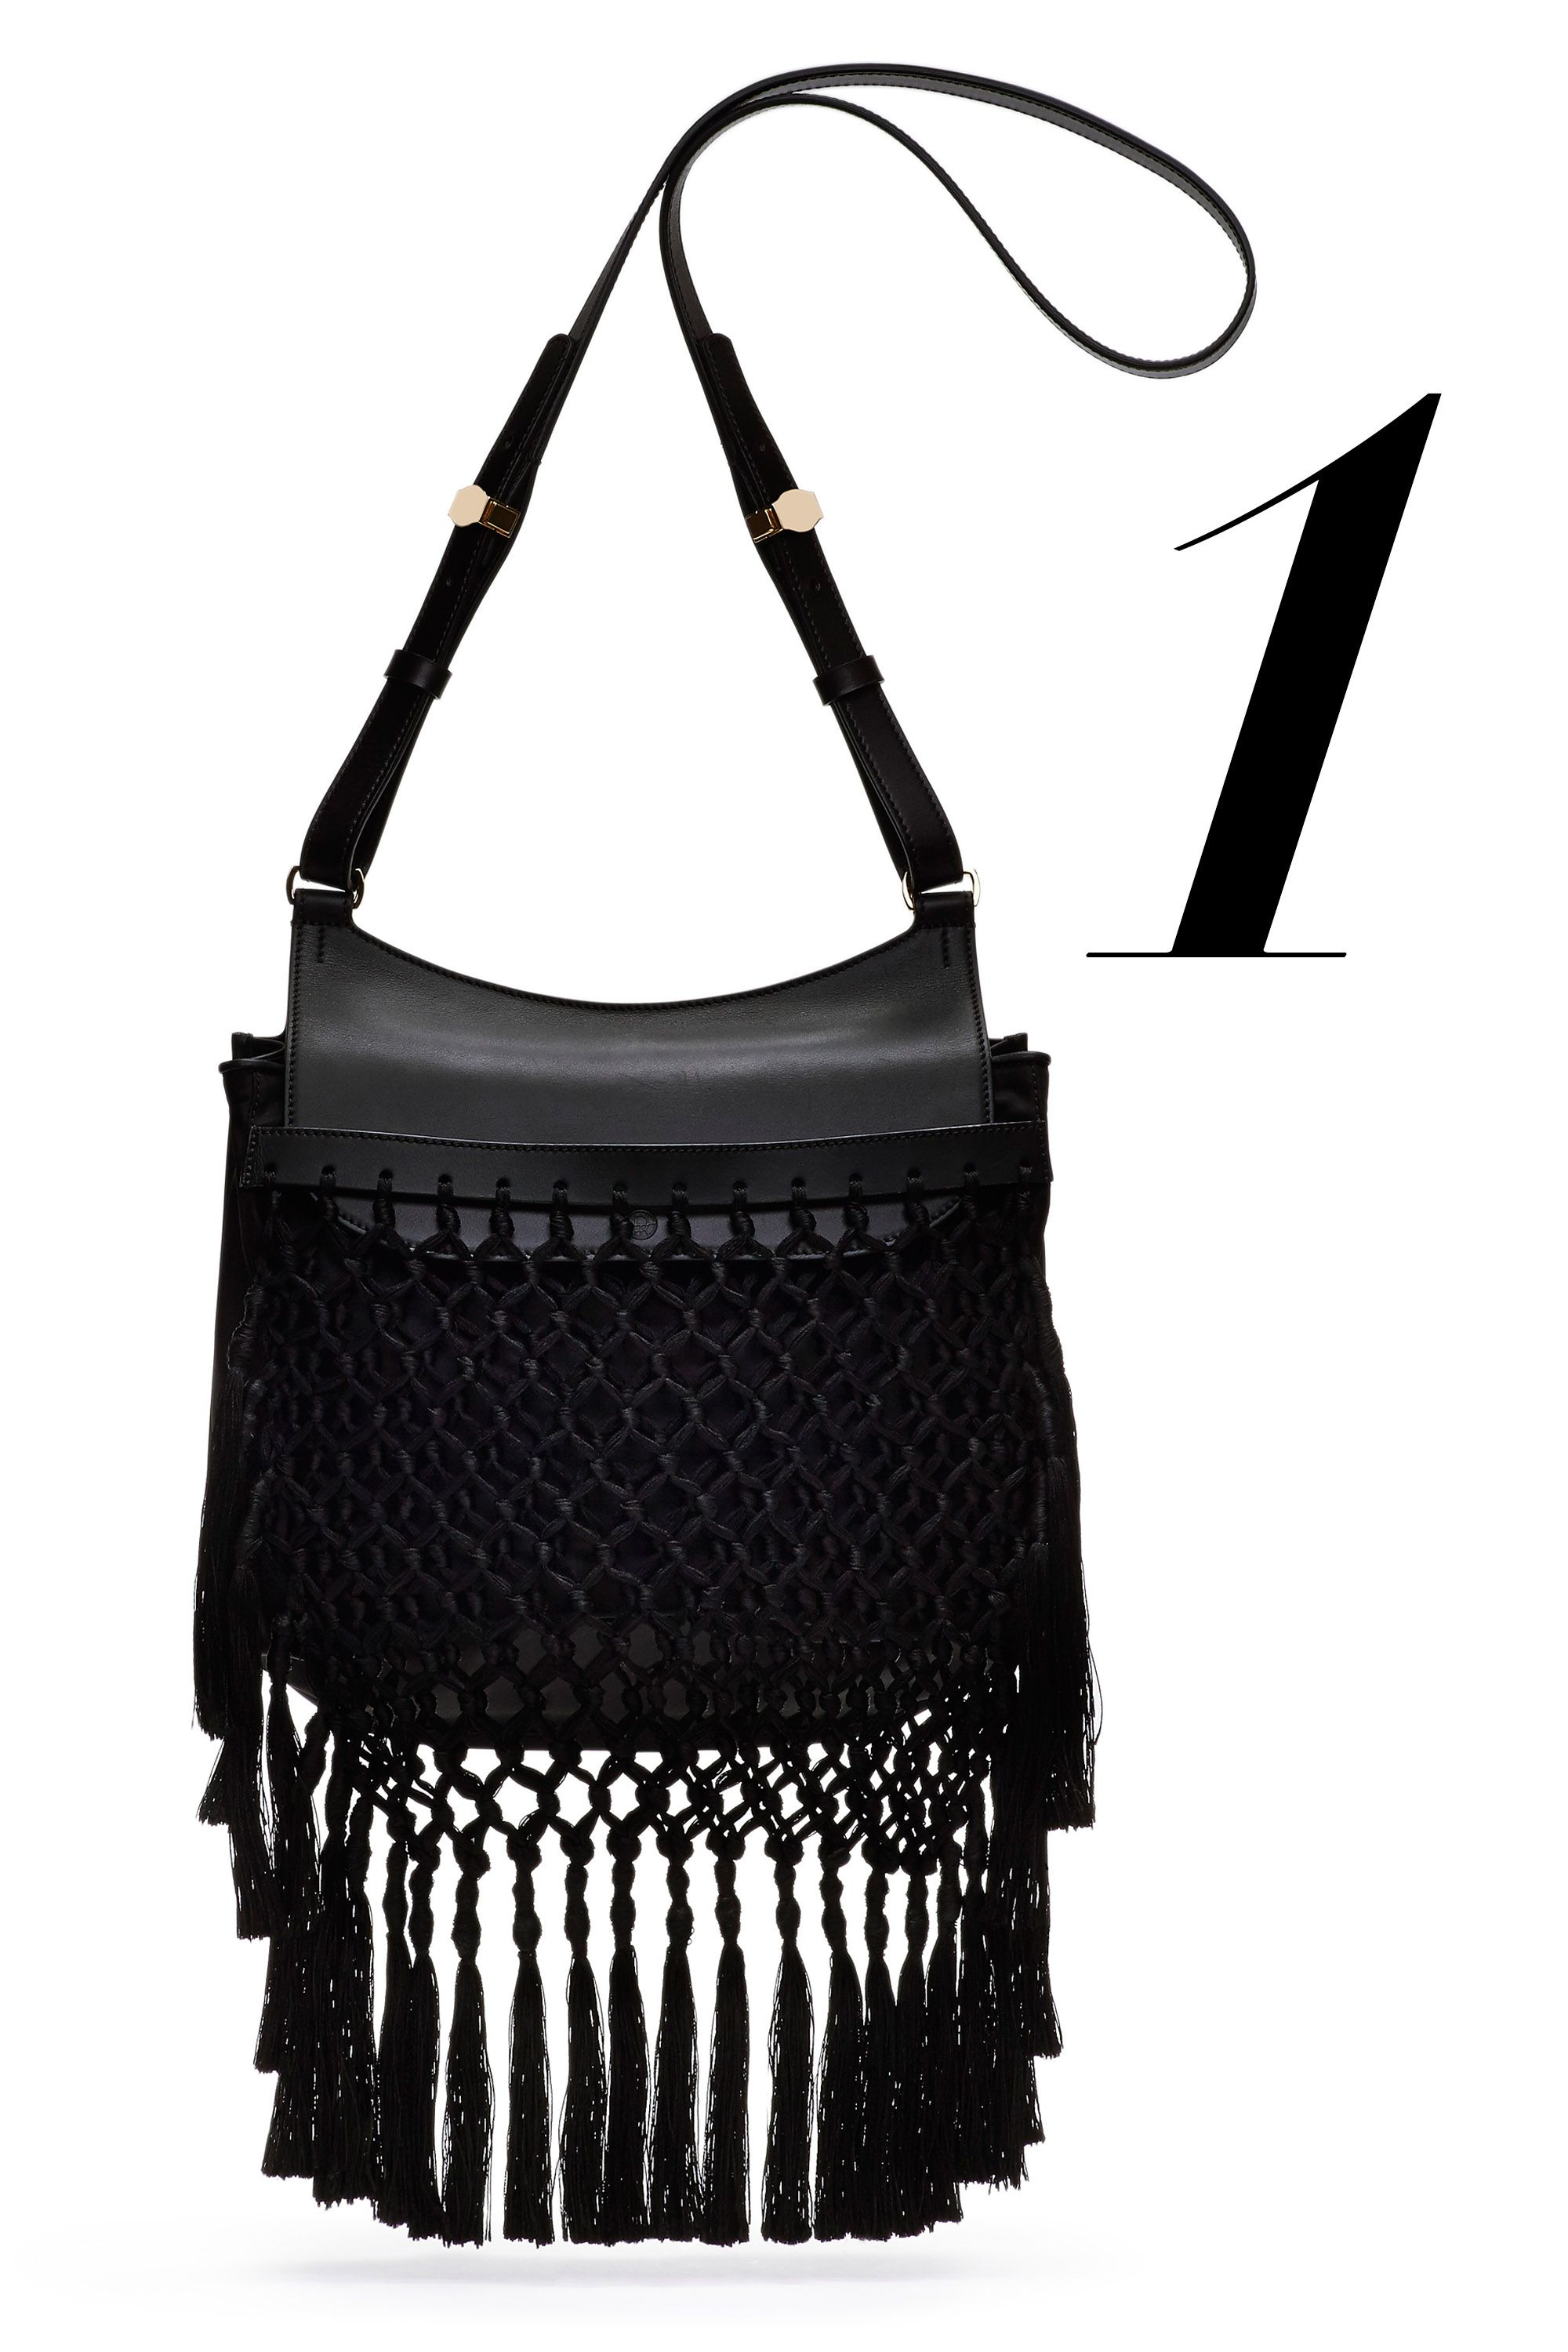 "<em>The Row bag, $6,200, <a href=""http://www.neimanmarcus.com/THE-ROW-Hunting-11-Woven-Shoulder-Bag-Black-the-row/prod176680022___/p.prod?icid=&searchType=MAIN&rte=%252Fsearch.jsp%253FN%253D4294914334%2526_requestid%253D295479%2526Ntt%253Dthe%252Brow&eItemId=prod176680022&cmCat=search"">neimanmarcus.com</a></em>"